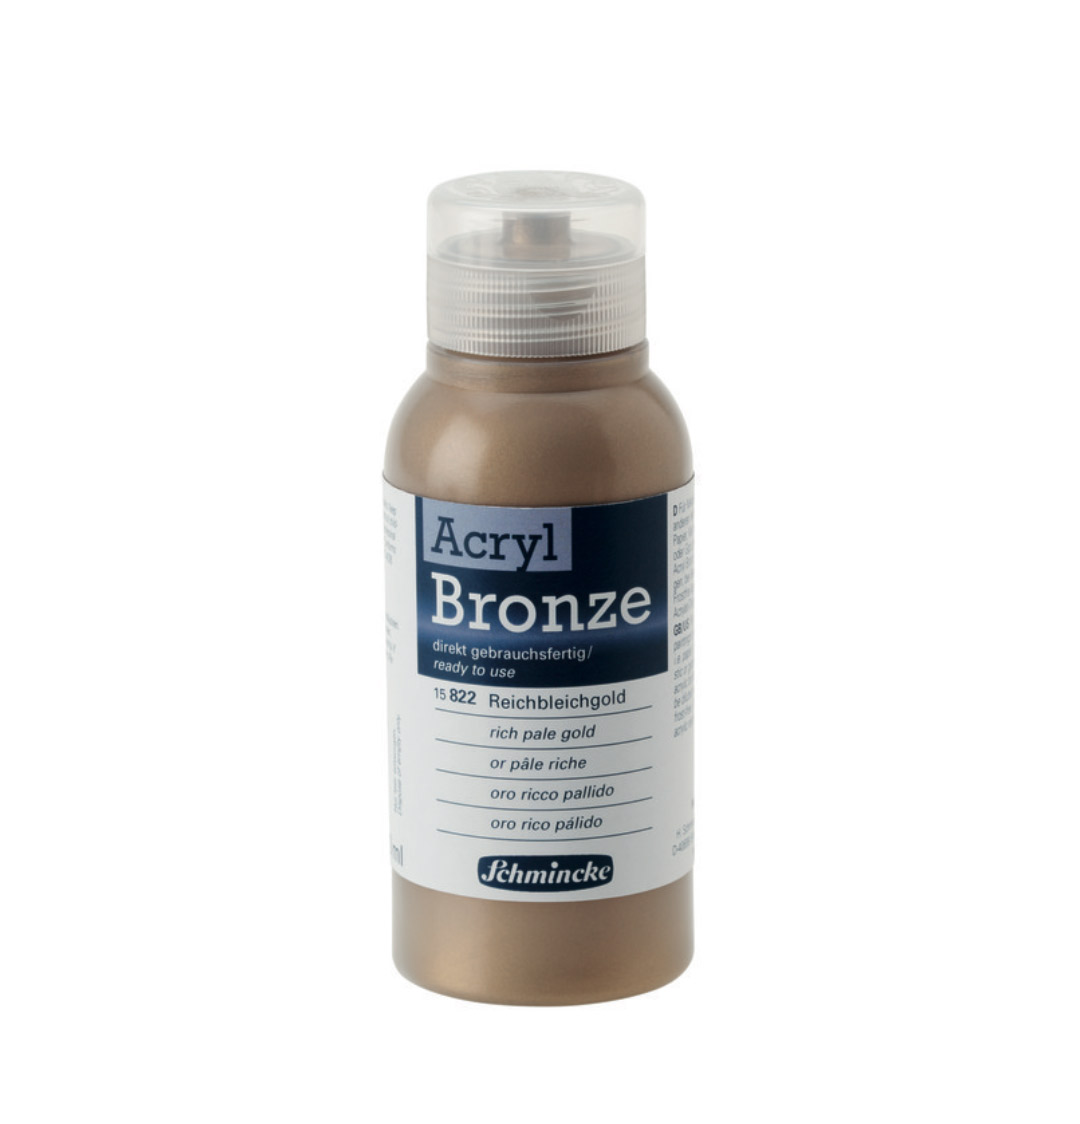 Schmincke Acrylic Bronze Rich Pale Gold 150Ml